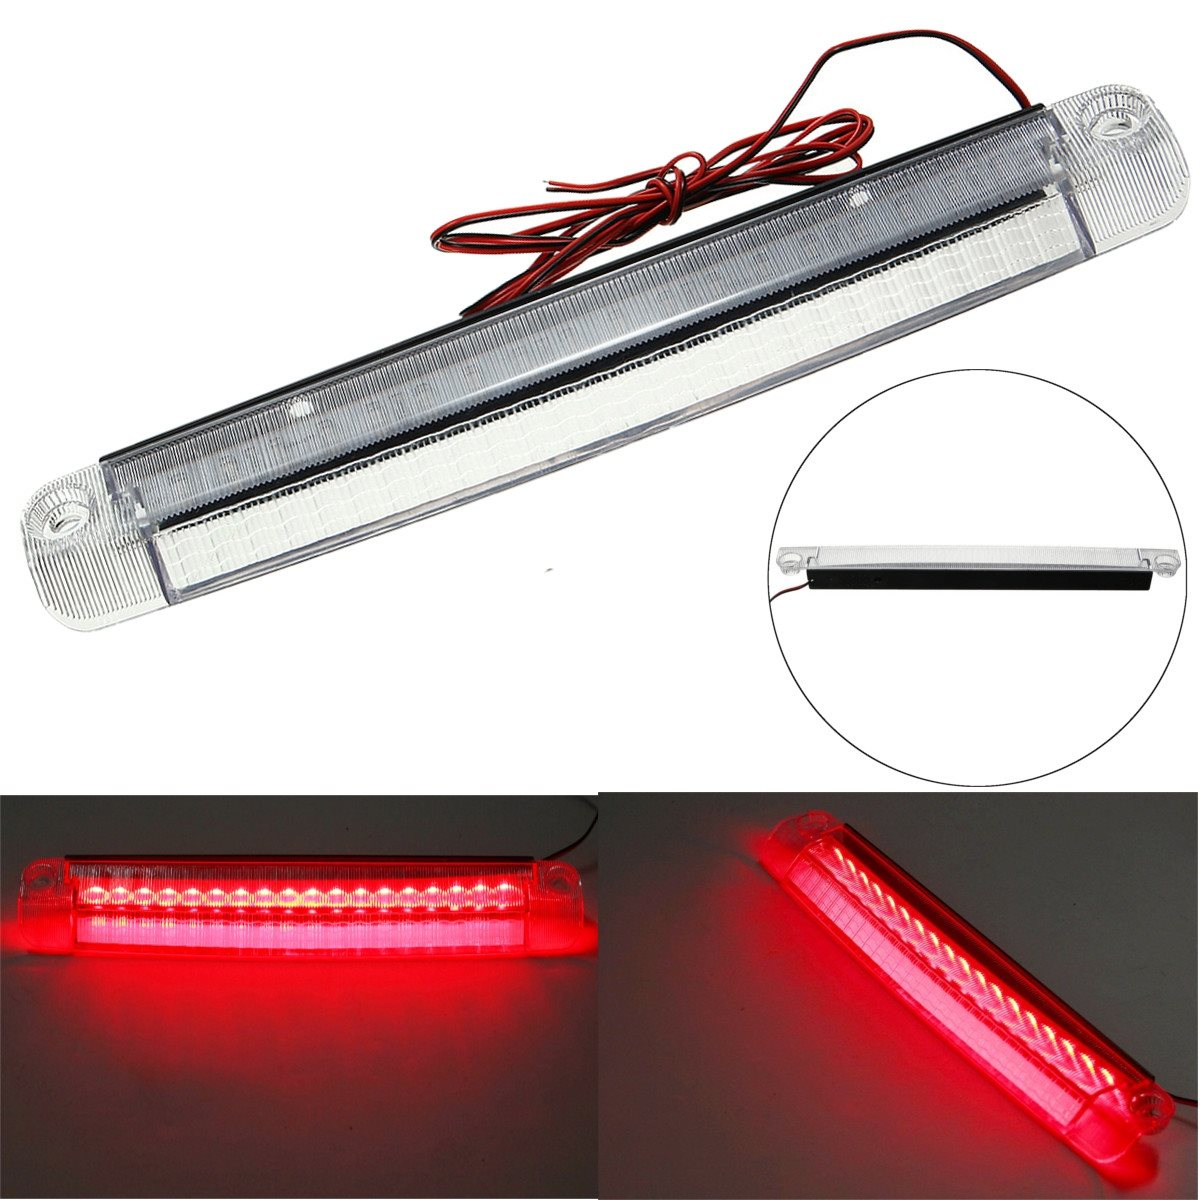 Unverisal 12V 5W Car 18 LED Car Reversing Lights Rear Tail Third Brake Stop Light High Mount Lamp Red 1210 venstpow 50pcs lot metric thread din912 m3 m4 304 stainless steel hex socket head cap screw bolts bike screw